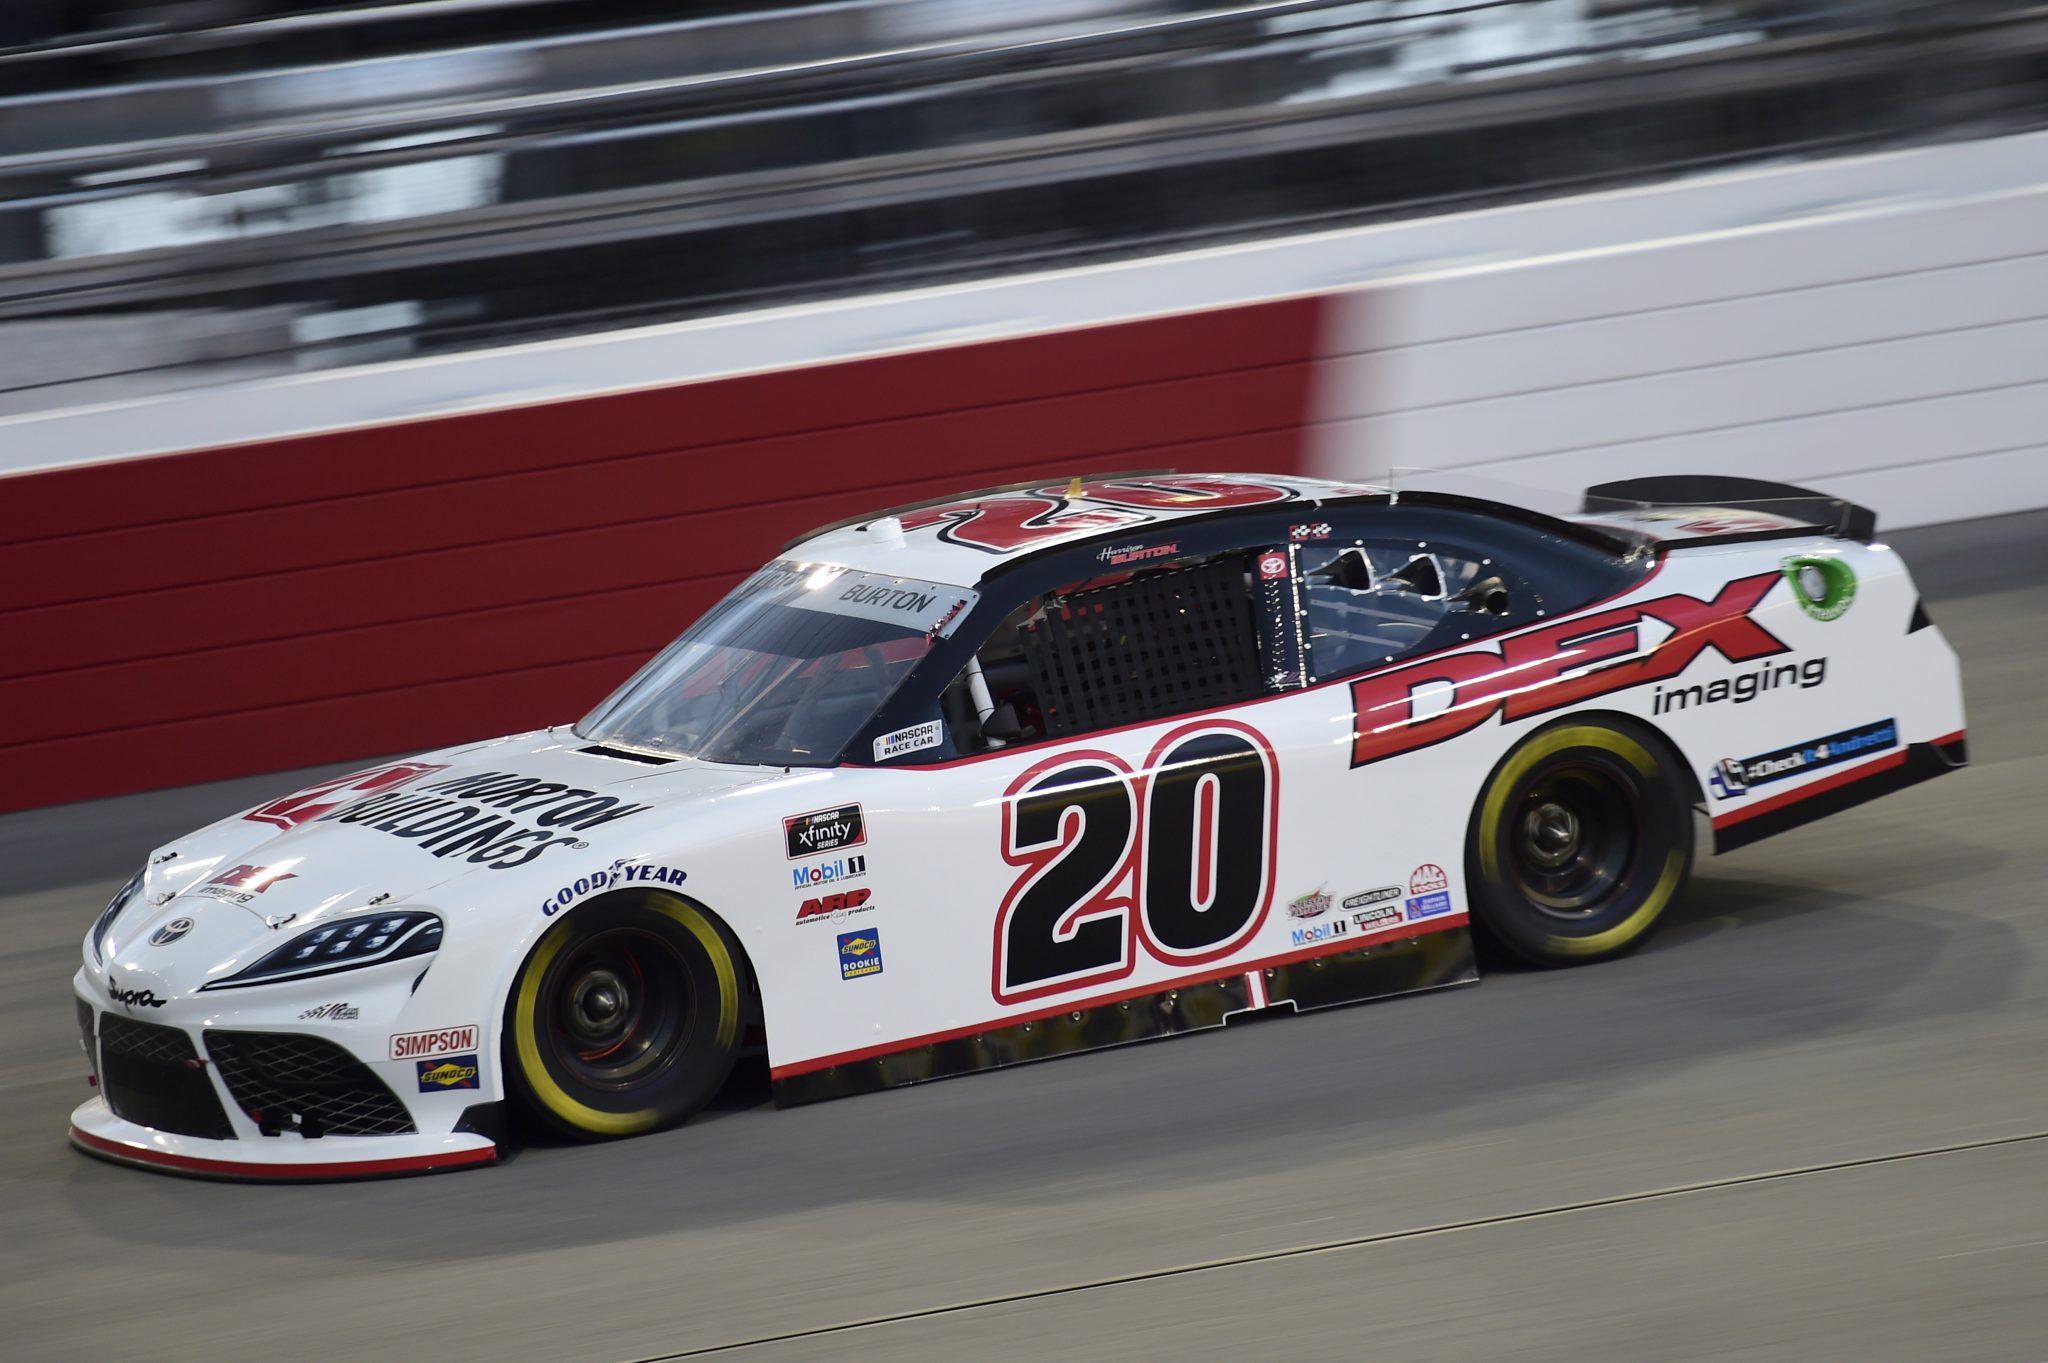 RICHMOND, VIRGINIA - SEPTEMBER 11: Harrison Burton, driver of the #20 DEX Imaging Toyota, drives during the NASCAR Xfinity Series Go Bowling 250 at Richmond Raceway on September 11, 2020 in Richmond, Virginia. (Photo by Jared C. Tilton/Getty Images) | Getty Images